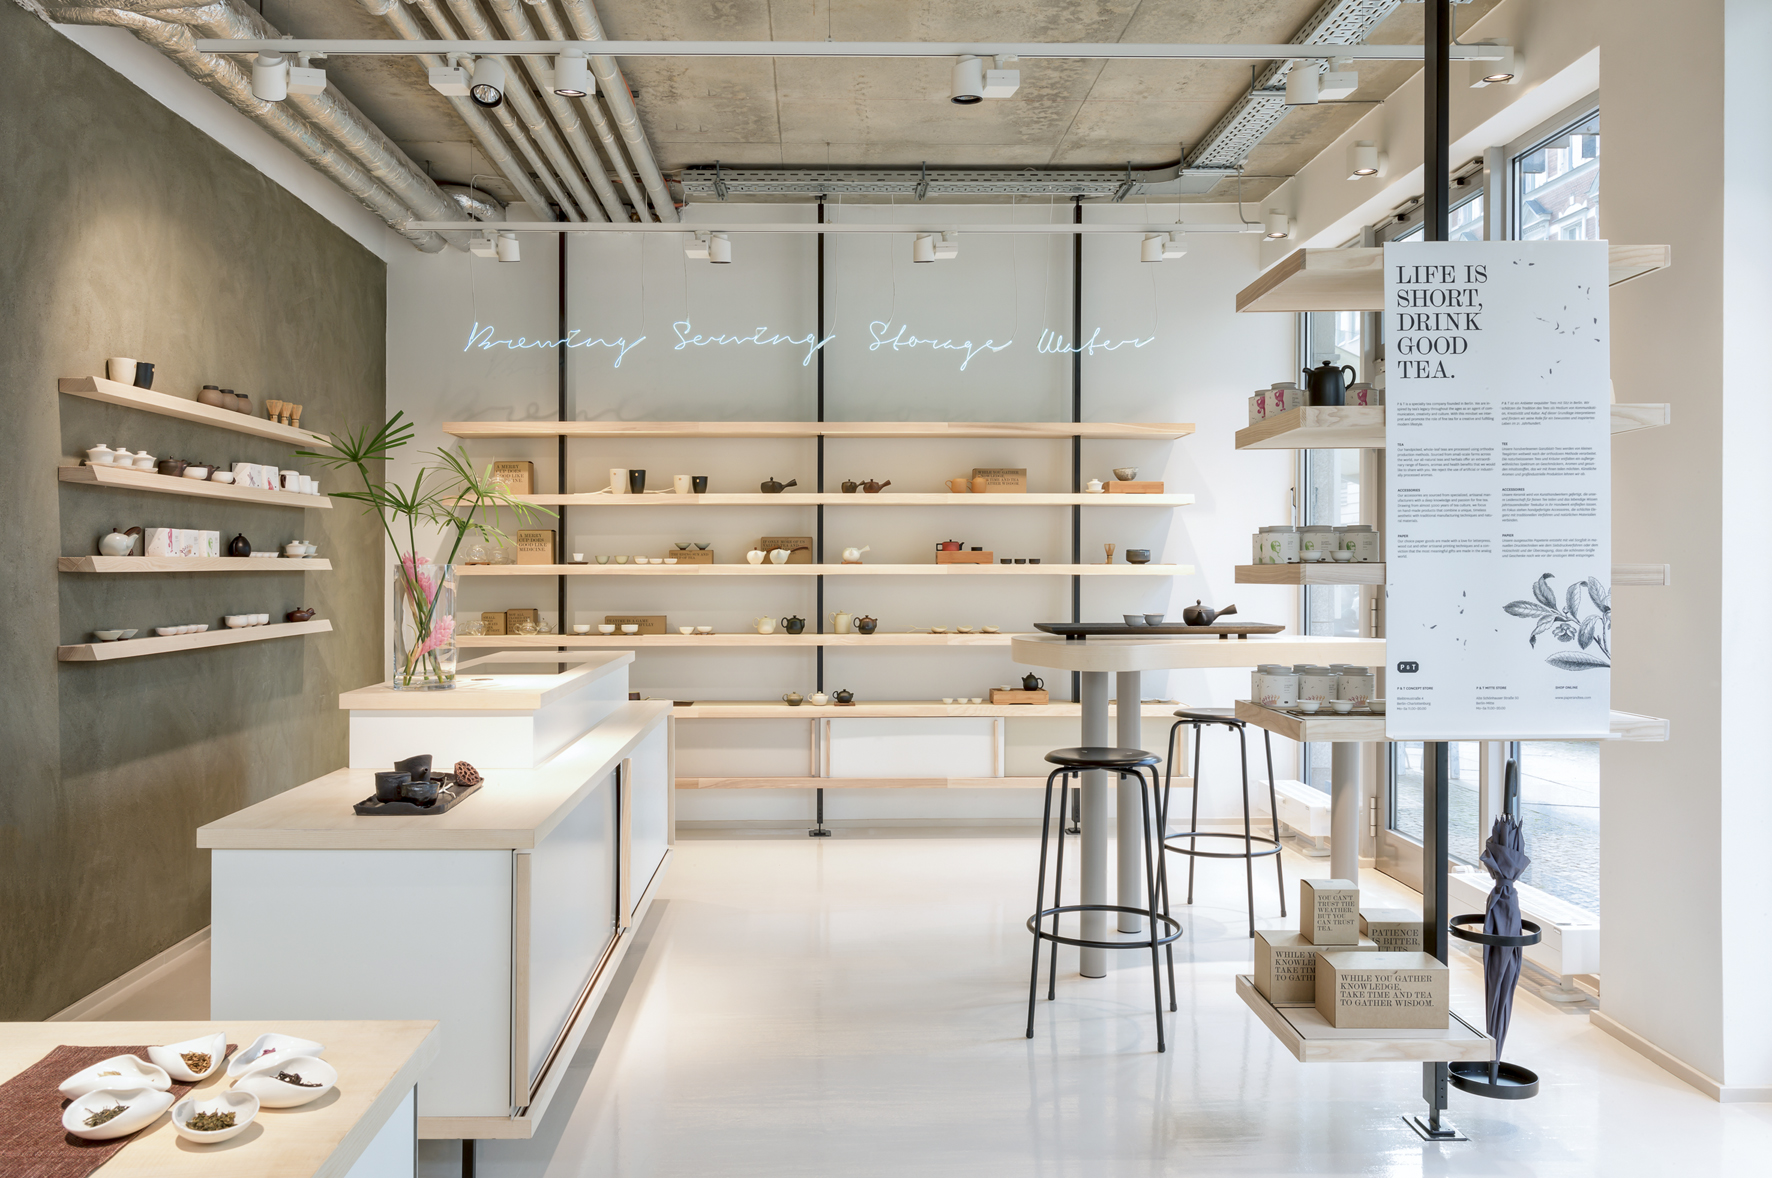 P t a place for purism tea and design an interview for Creative director of interior design